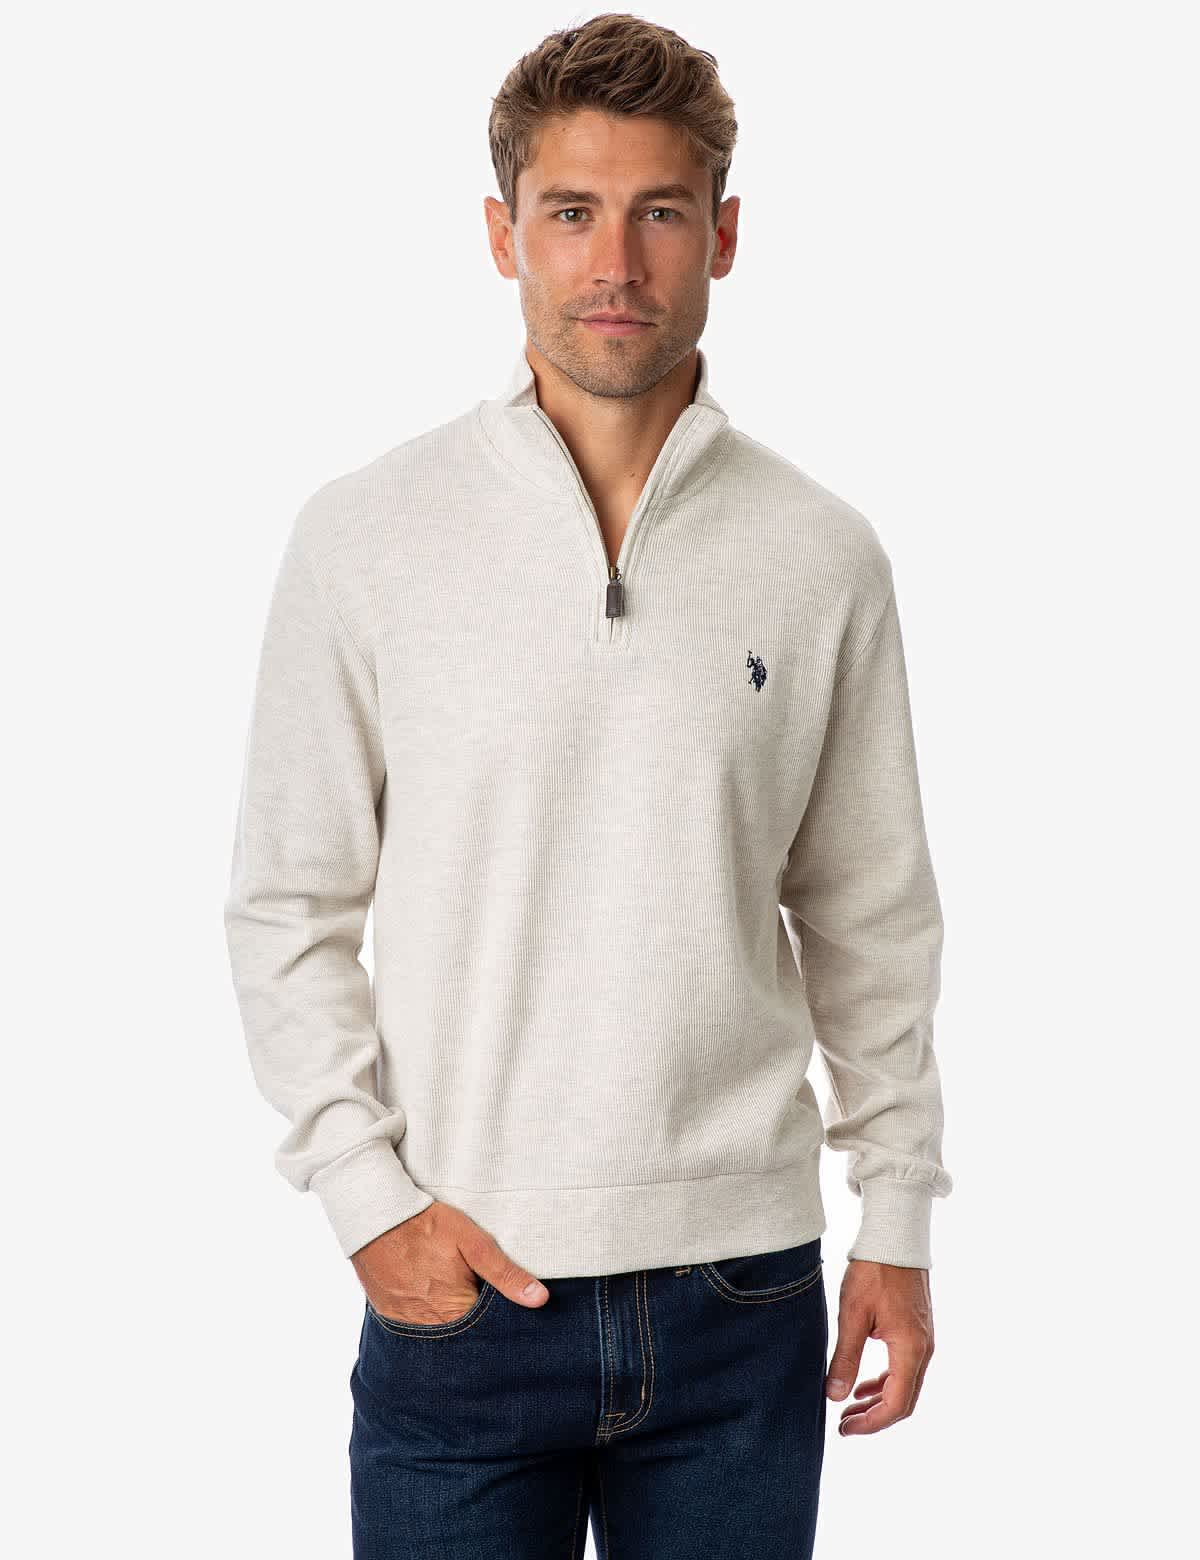 U.S. Polo Assn. Fall Sale